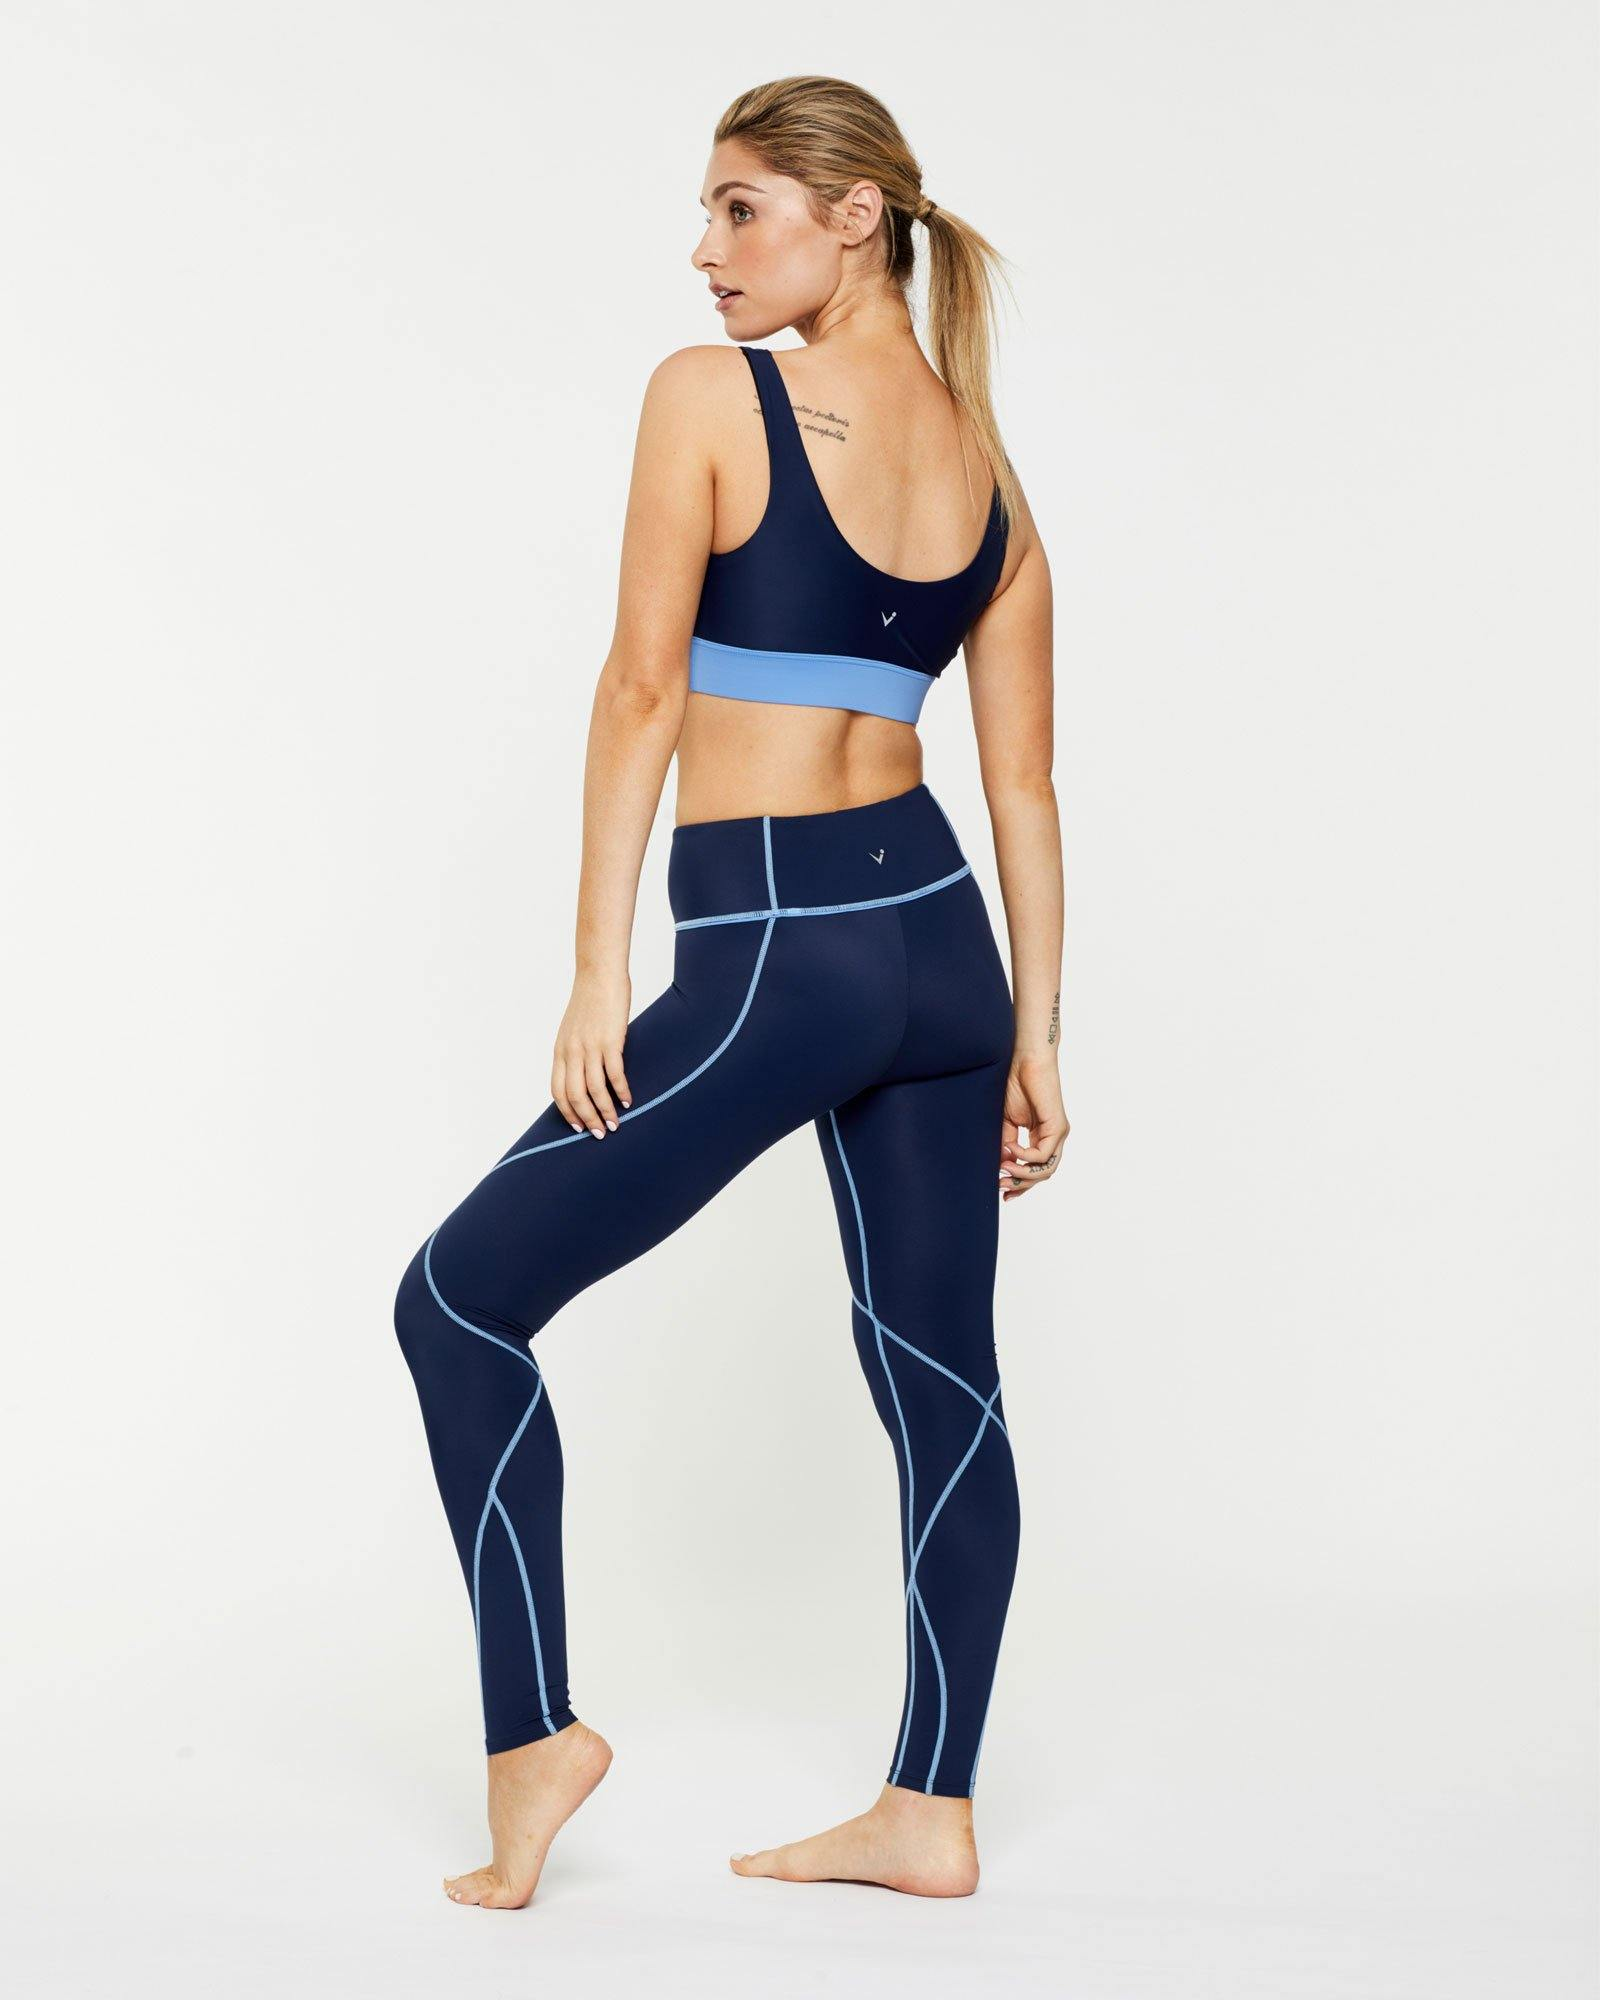 Femininely Vastus mid waist long Navy legging with contrast stitching, side view worn with Pectoralis active bra top, for pilates, barre, yoga, gym and studio workouts